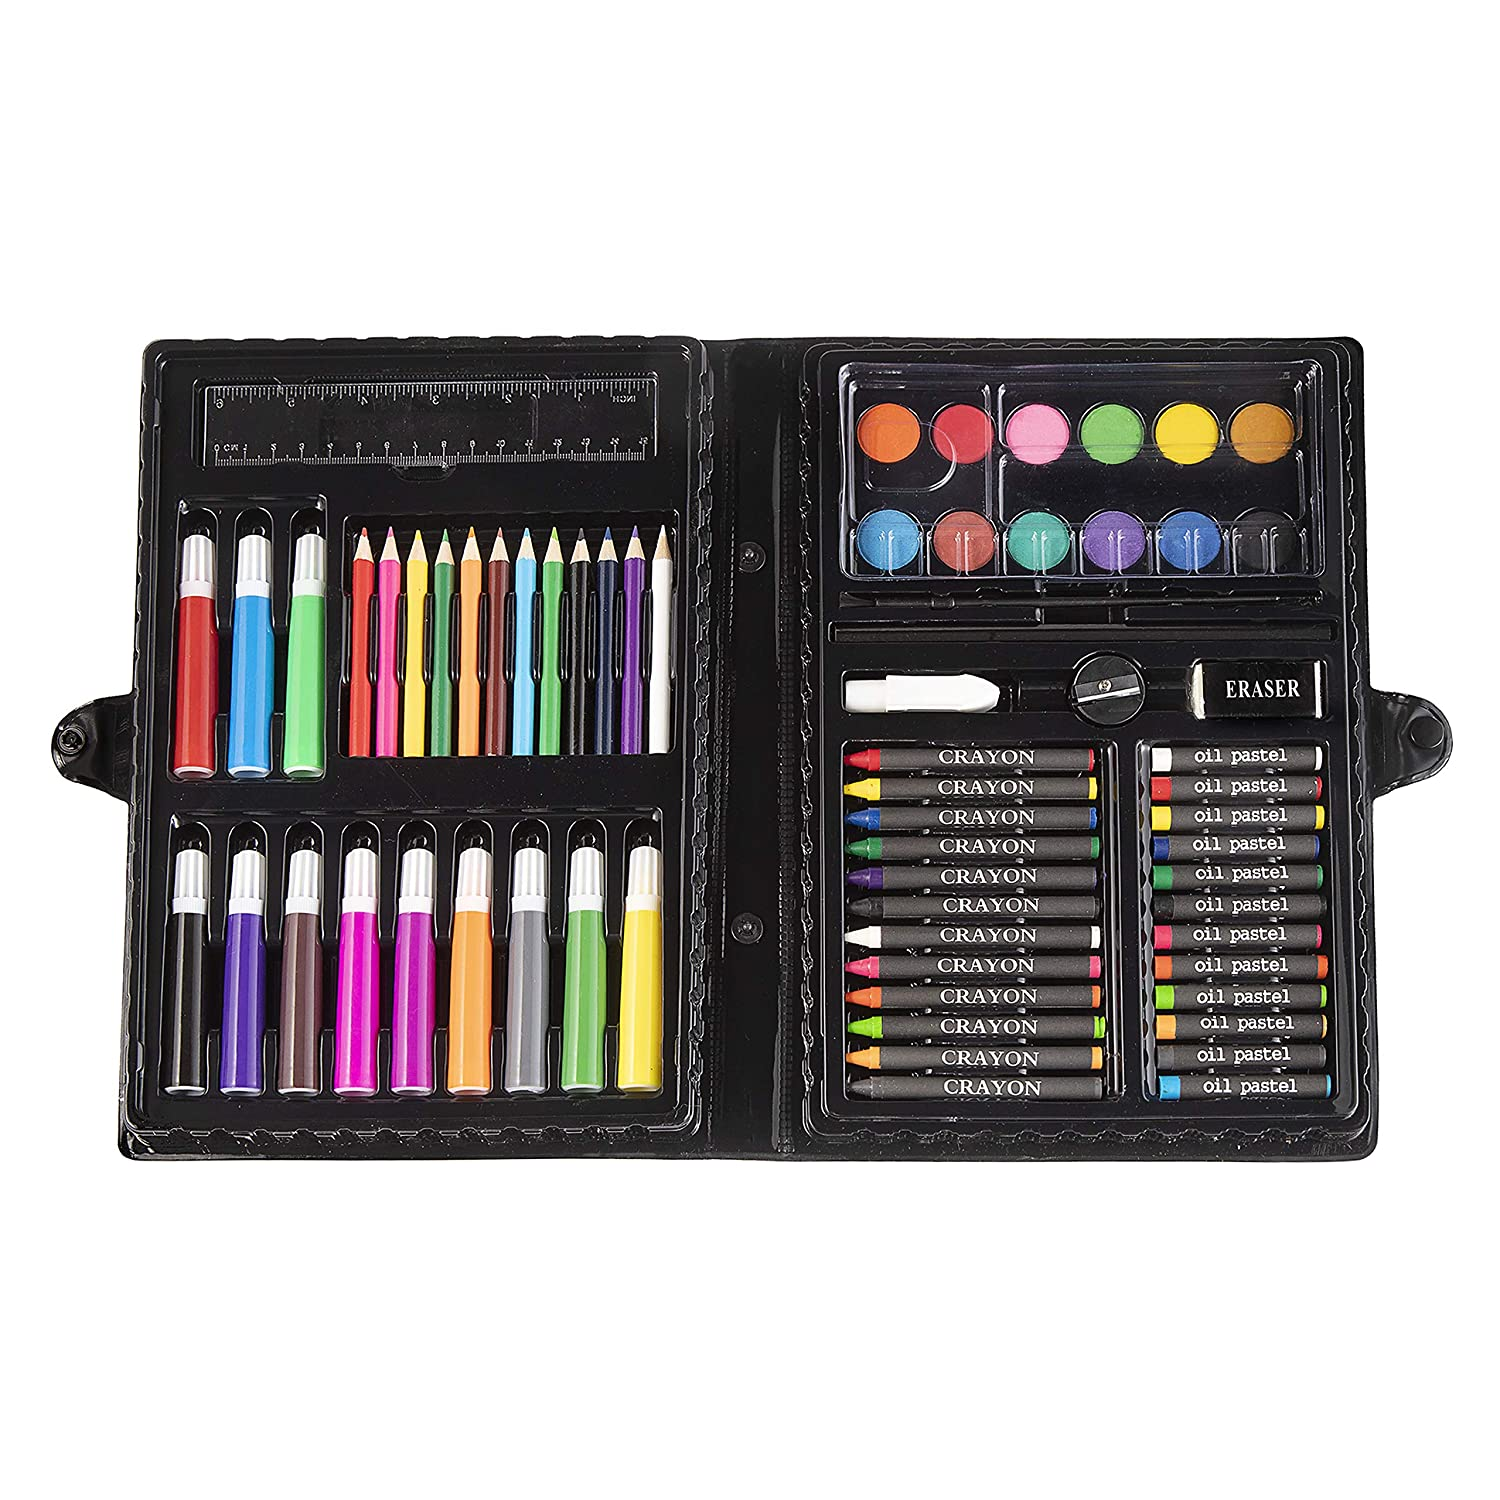 Darice 120-Piece Deluxe Art Set – Art Supplies for Drawing, Painting and More in a Plastic Case - Makes a Great Gift for Children and Adults 1103-02